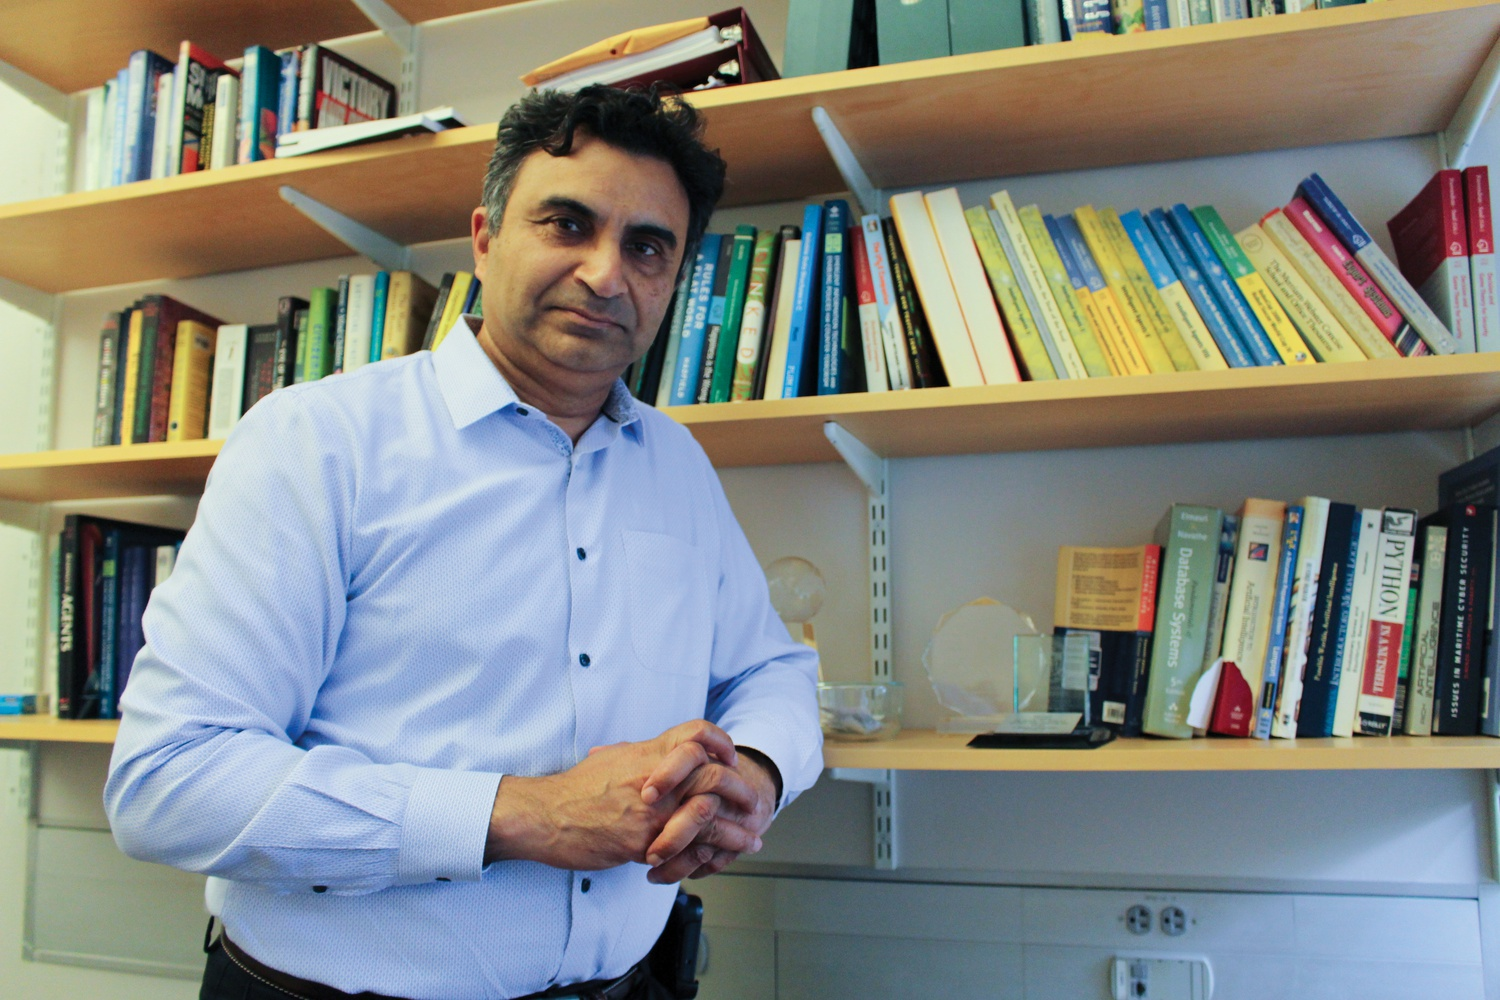 Milind Tambe, who studies artificial intelligence, joined the Harvard faculty this year after several years teaching at the University of Southern California.